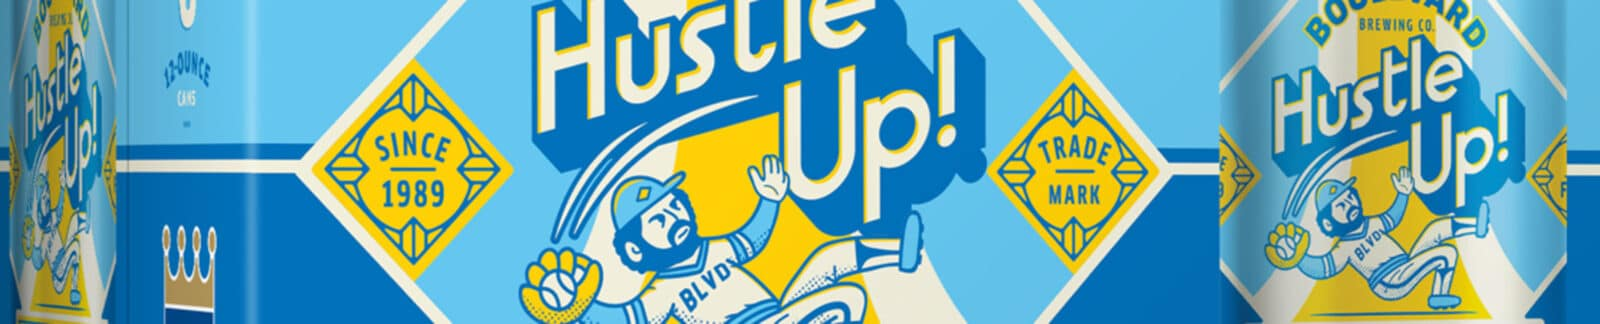 Hustle Up! Blonde Ale header